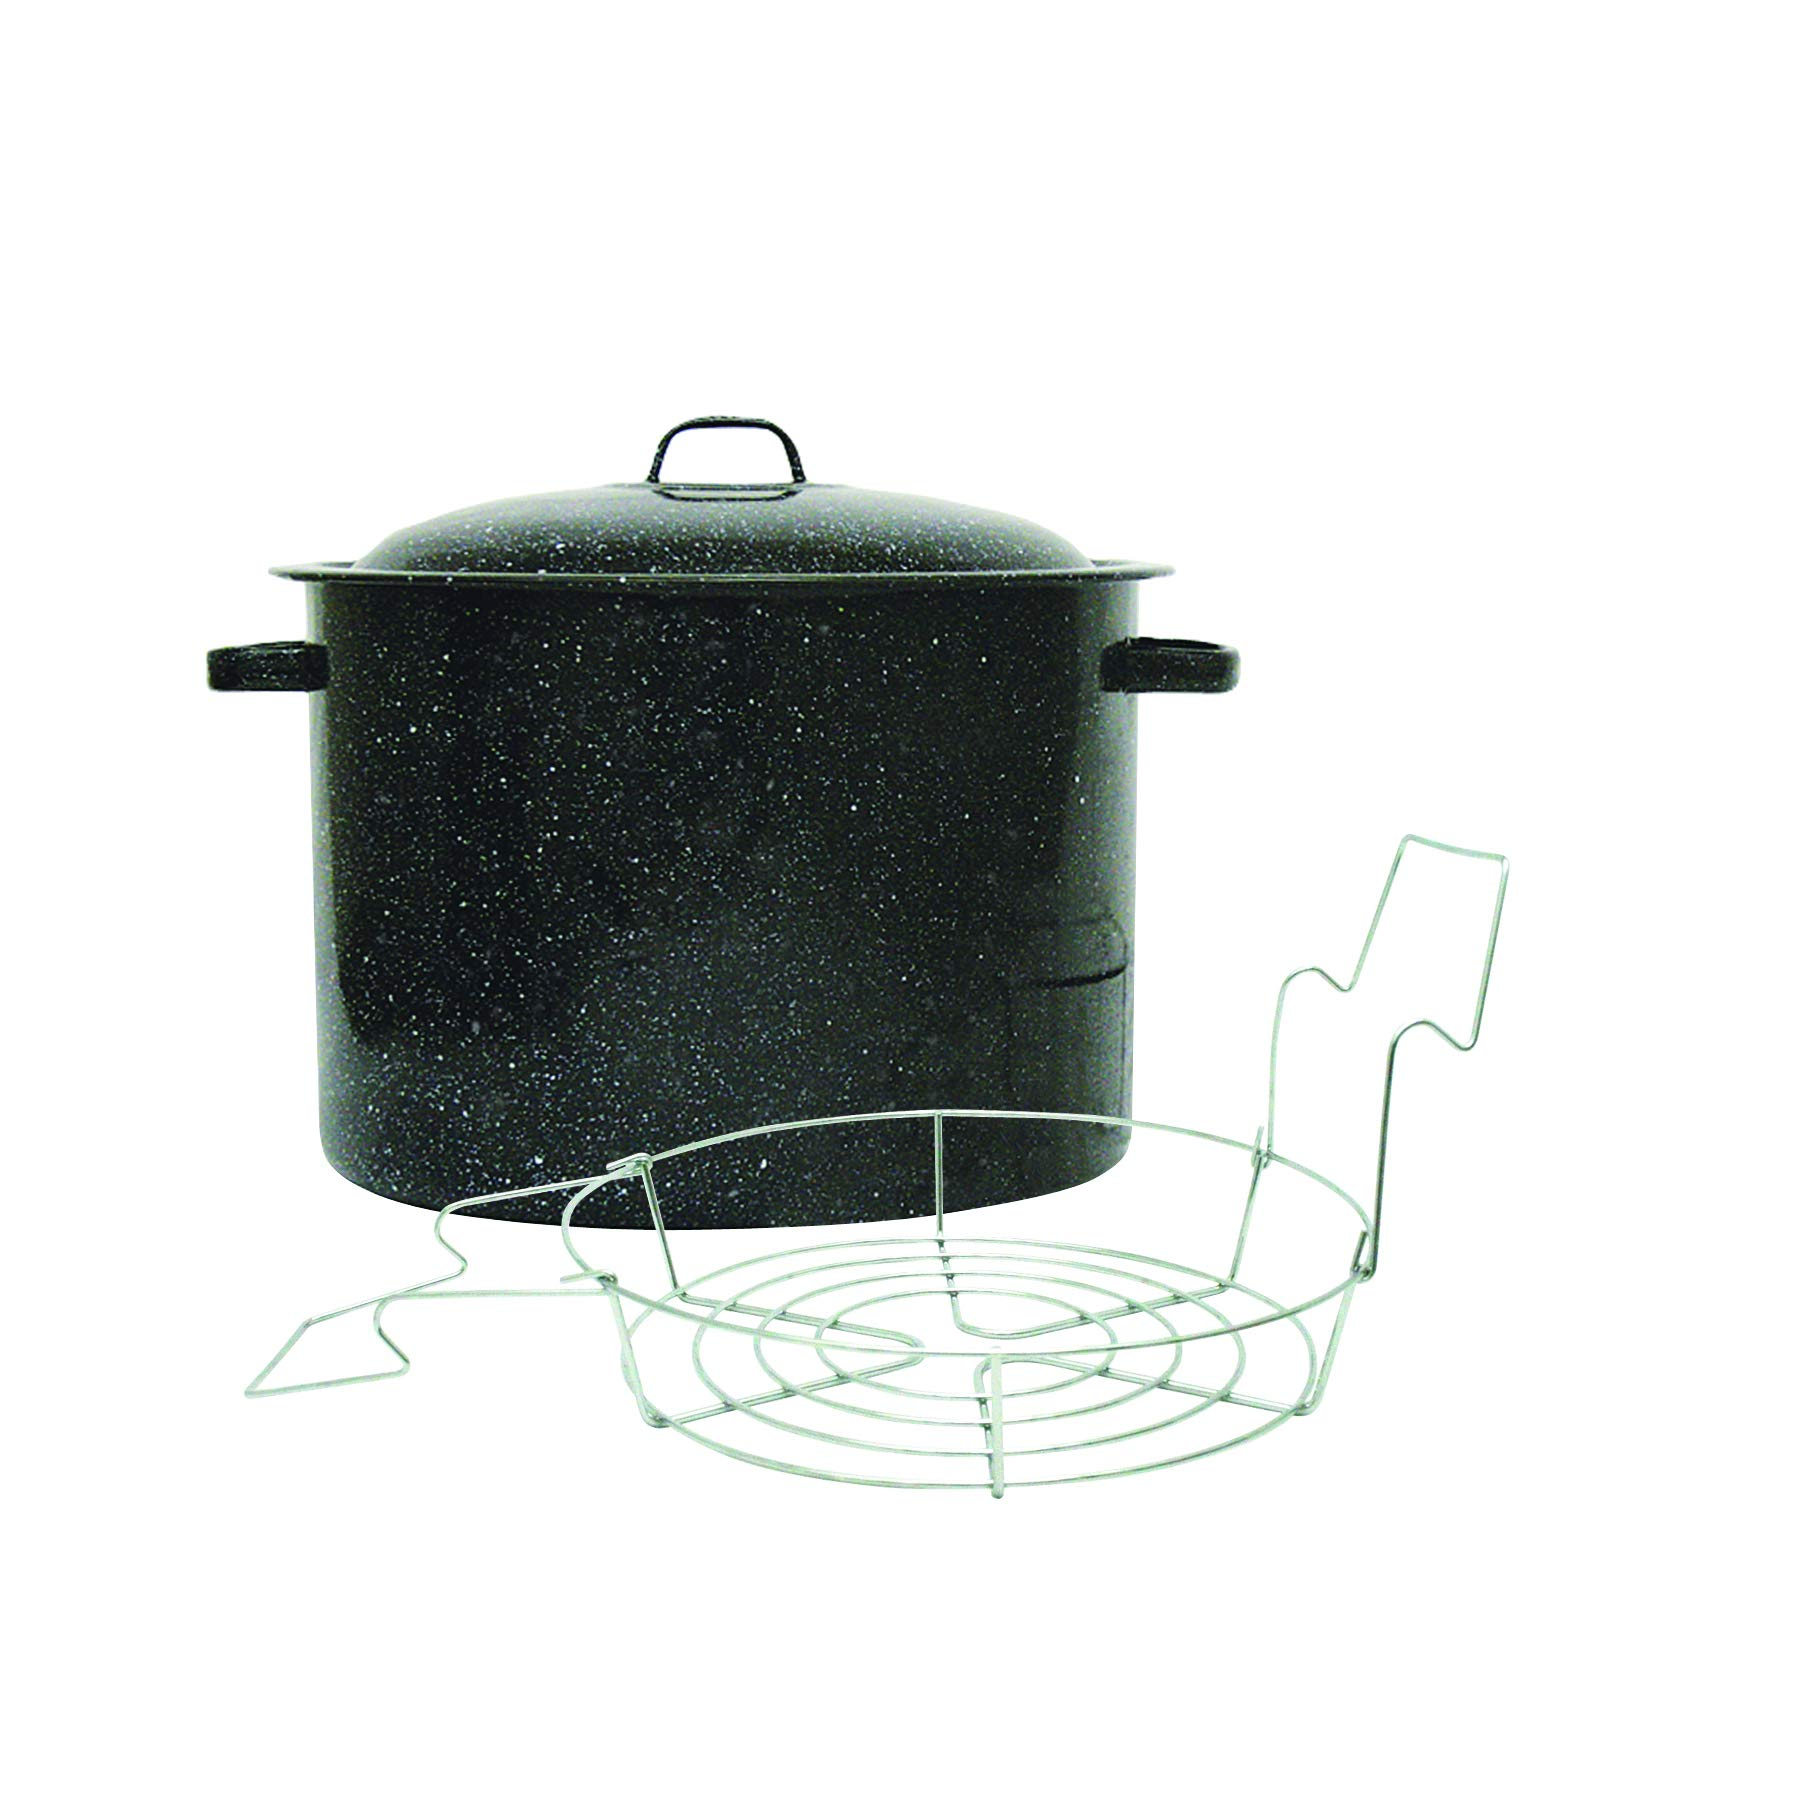 Granite Ware Covered Preserving Canner with Rack, 12-Quart by Granite Ware